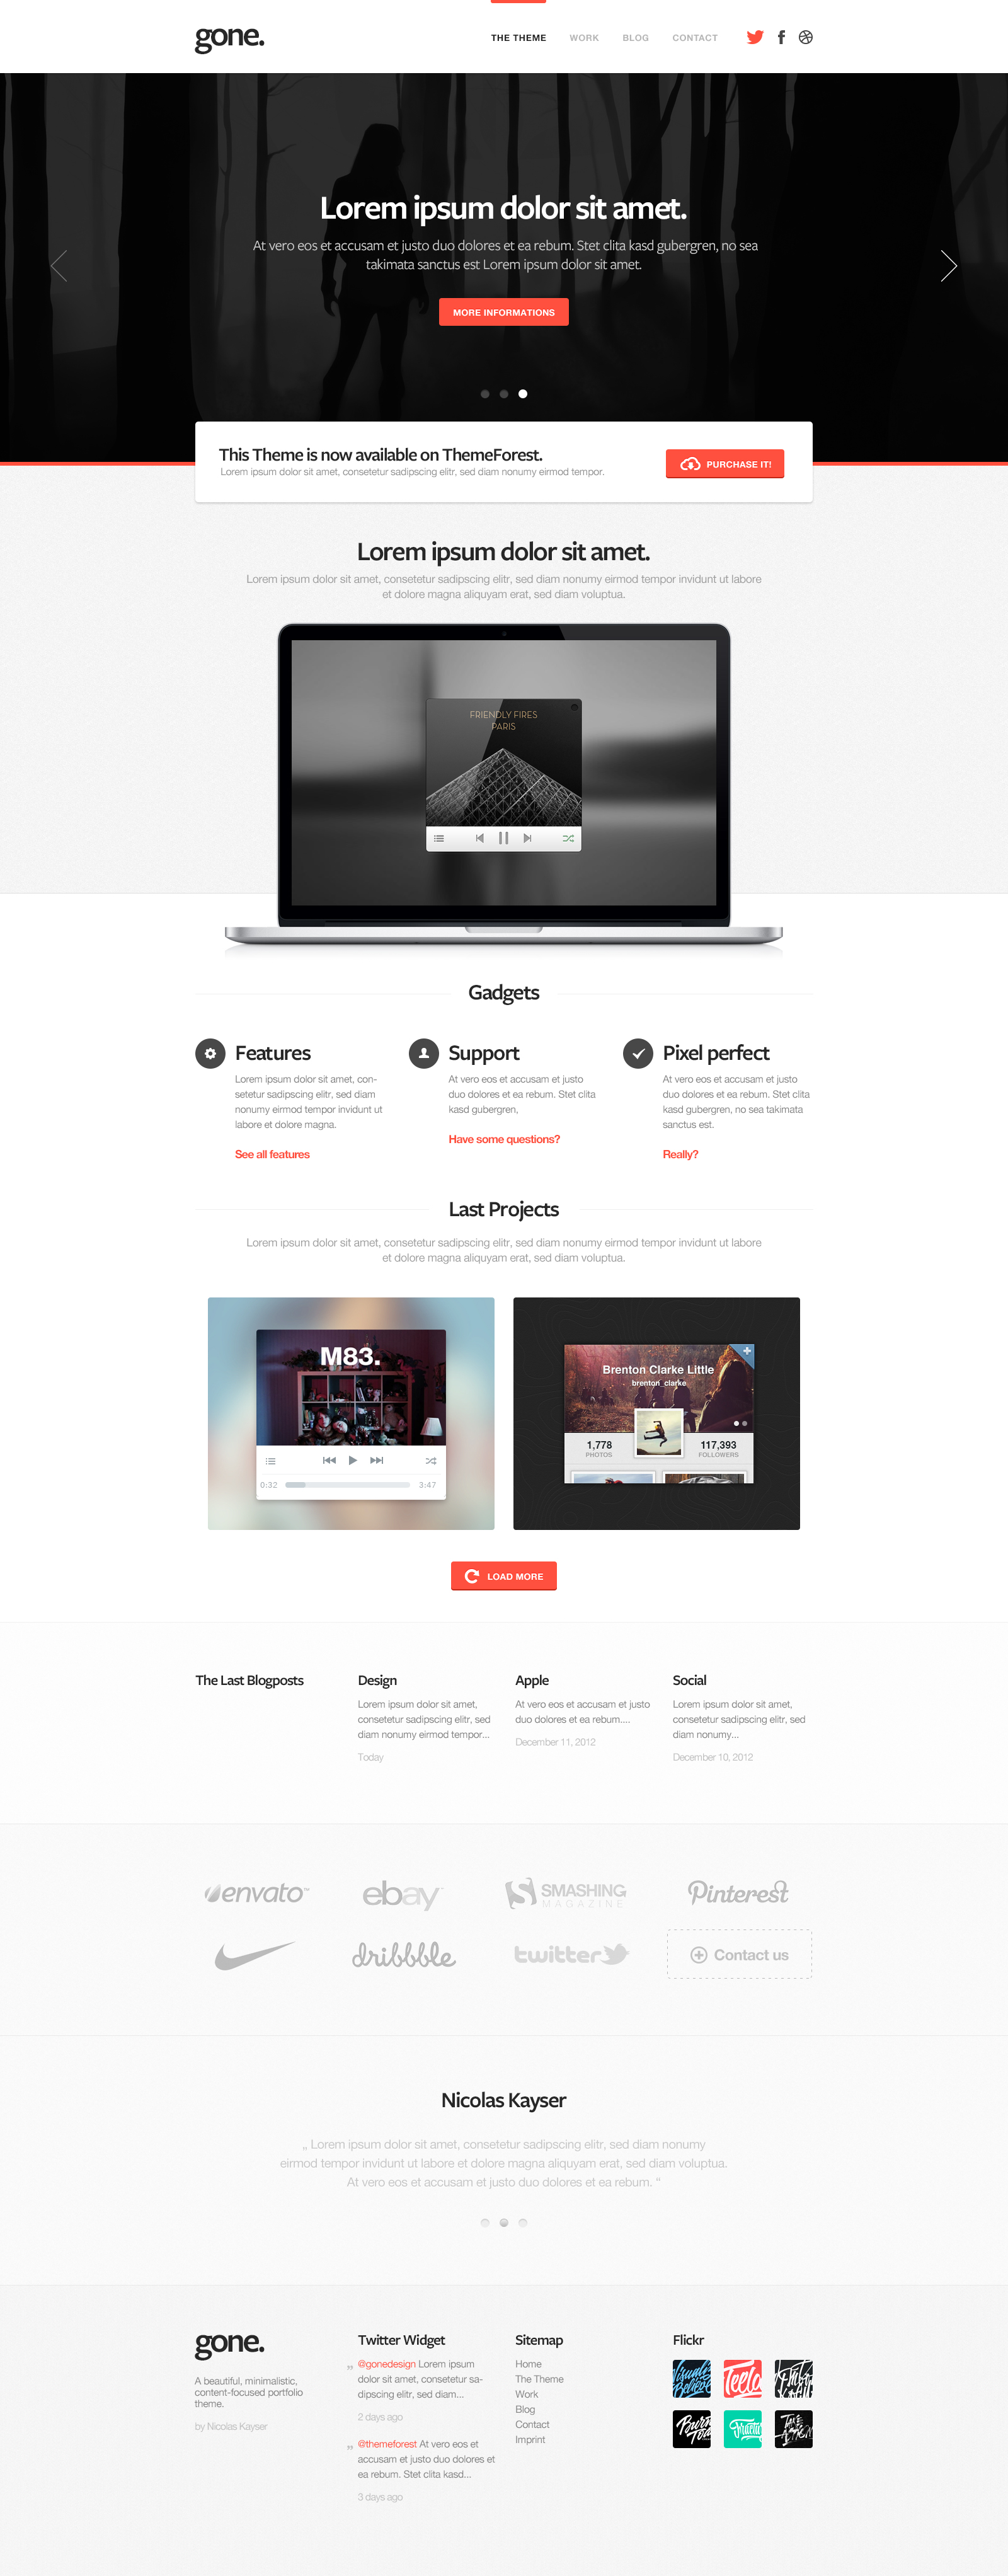 gone - new wordpress template by cPl92